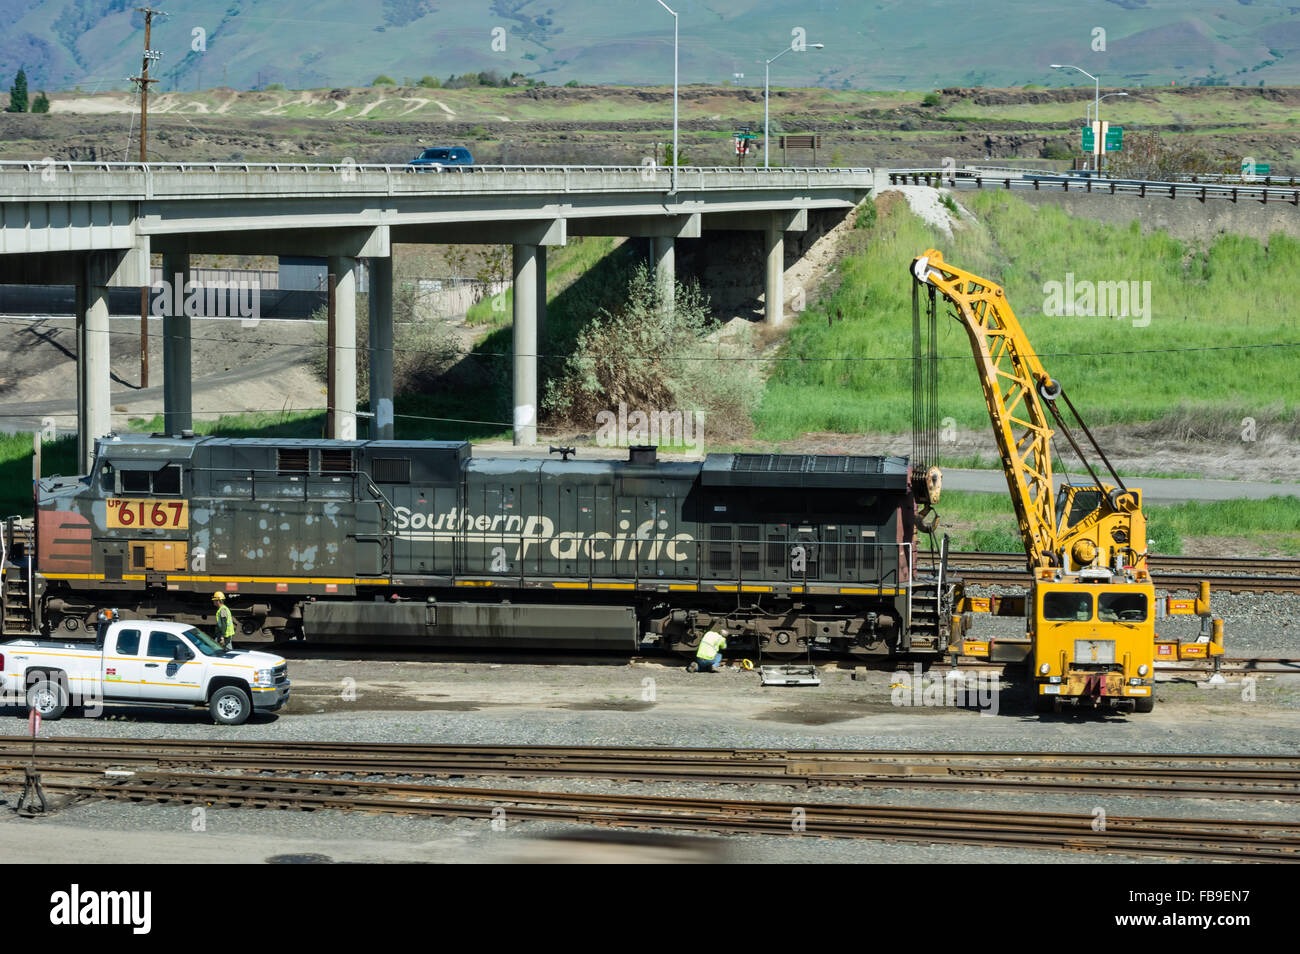 Workers using a mobile crane to repair a locomotive engine on the railroad. - Stock Image